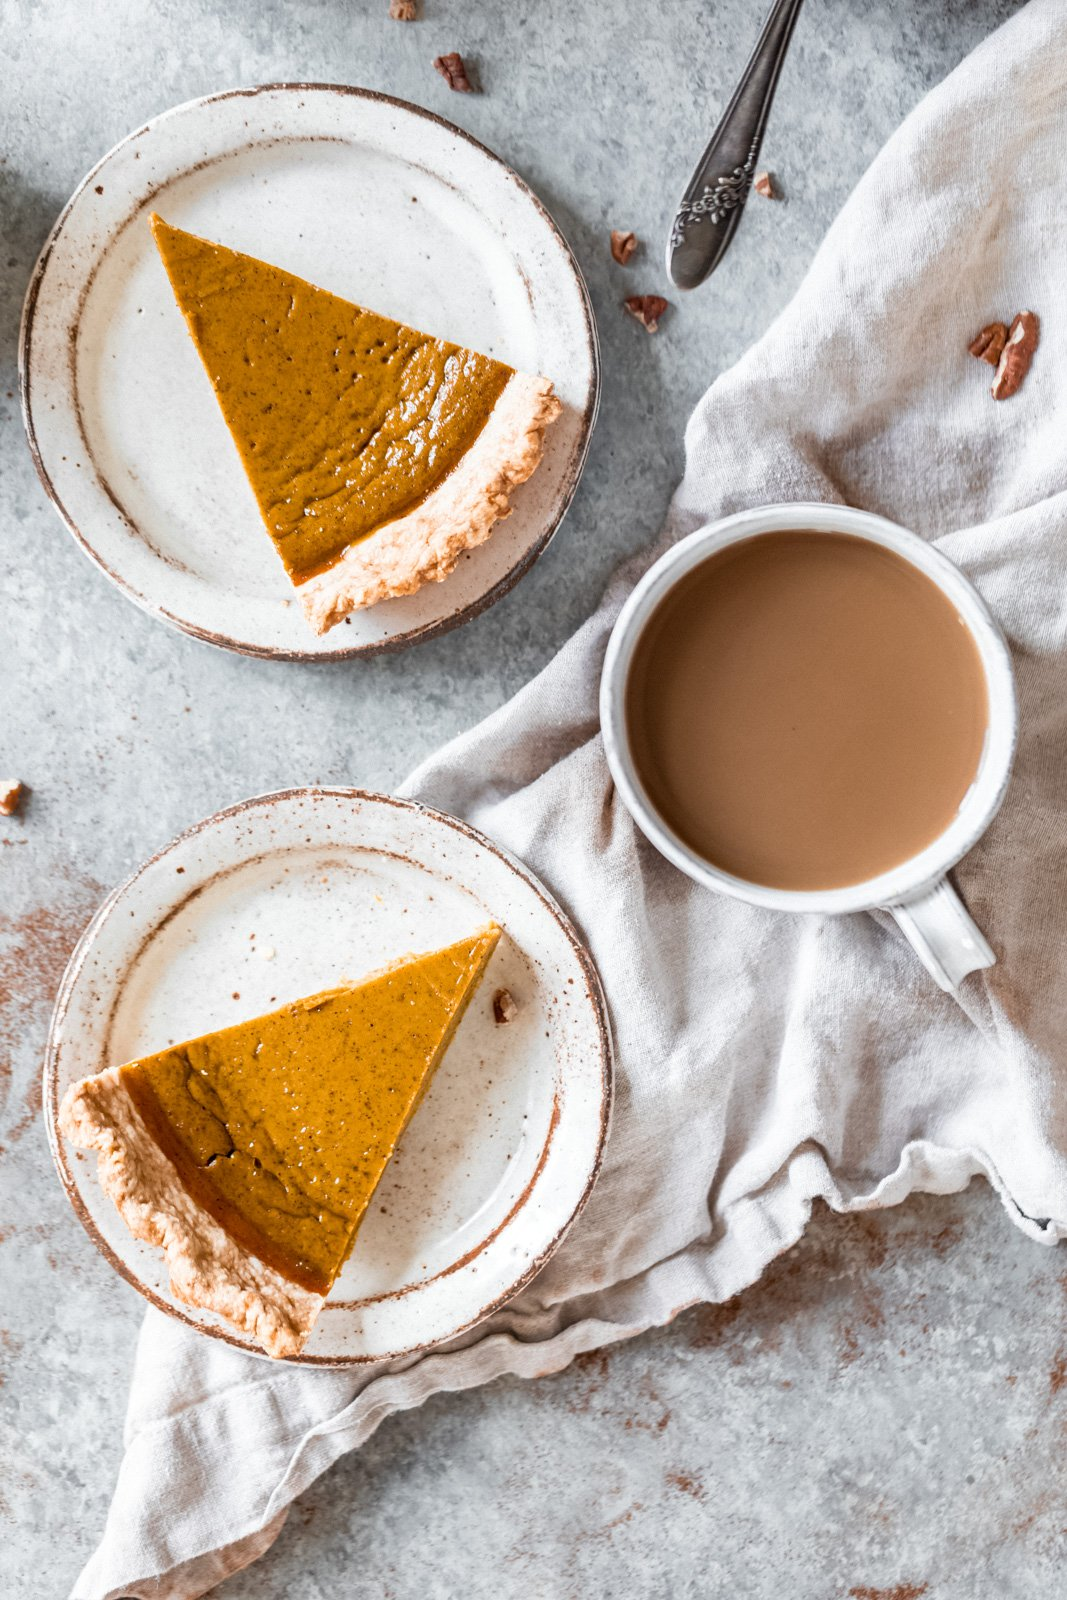 healthy pumpkin pie on two plates next to a mug of coffee